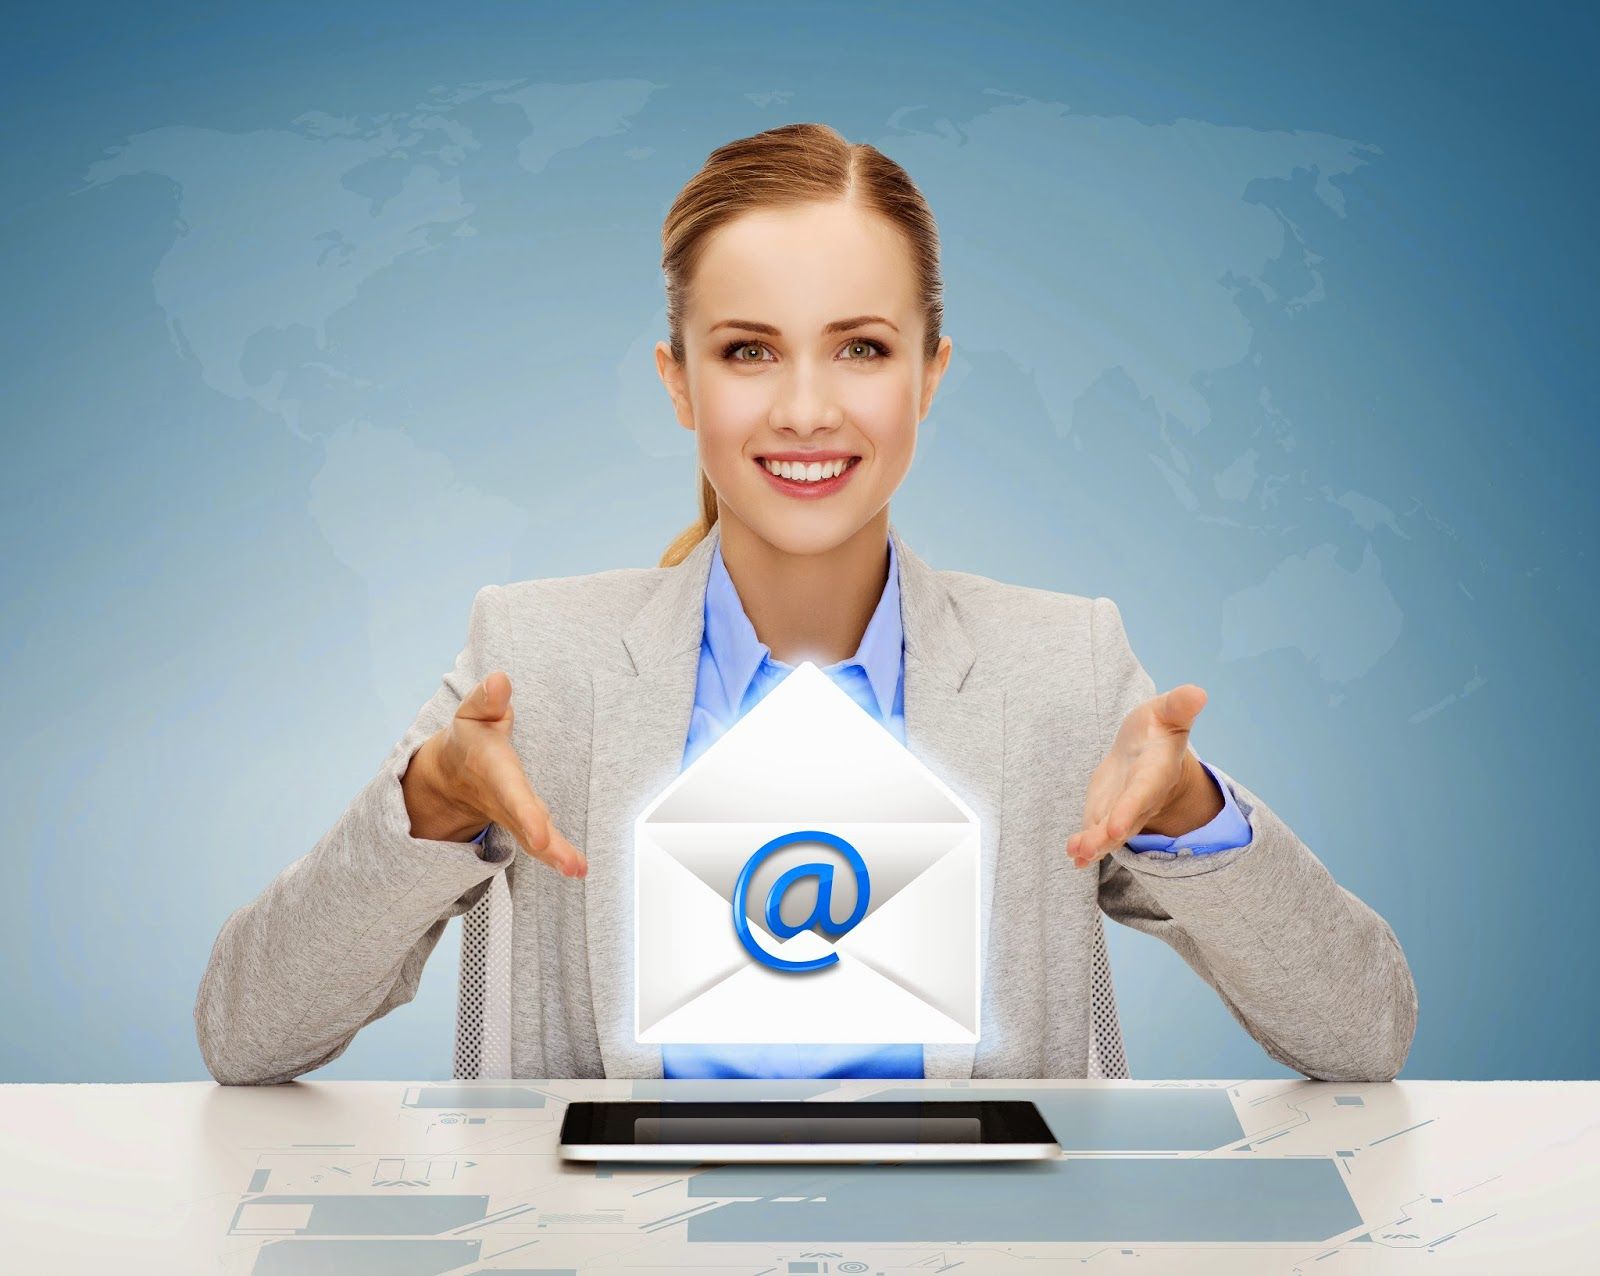 What Makes for a Well-Developed Email Newsletter?